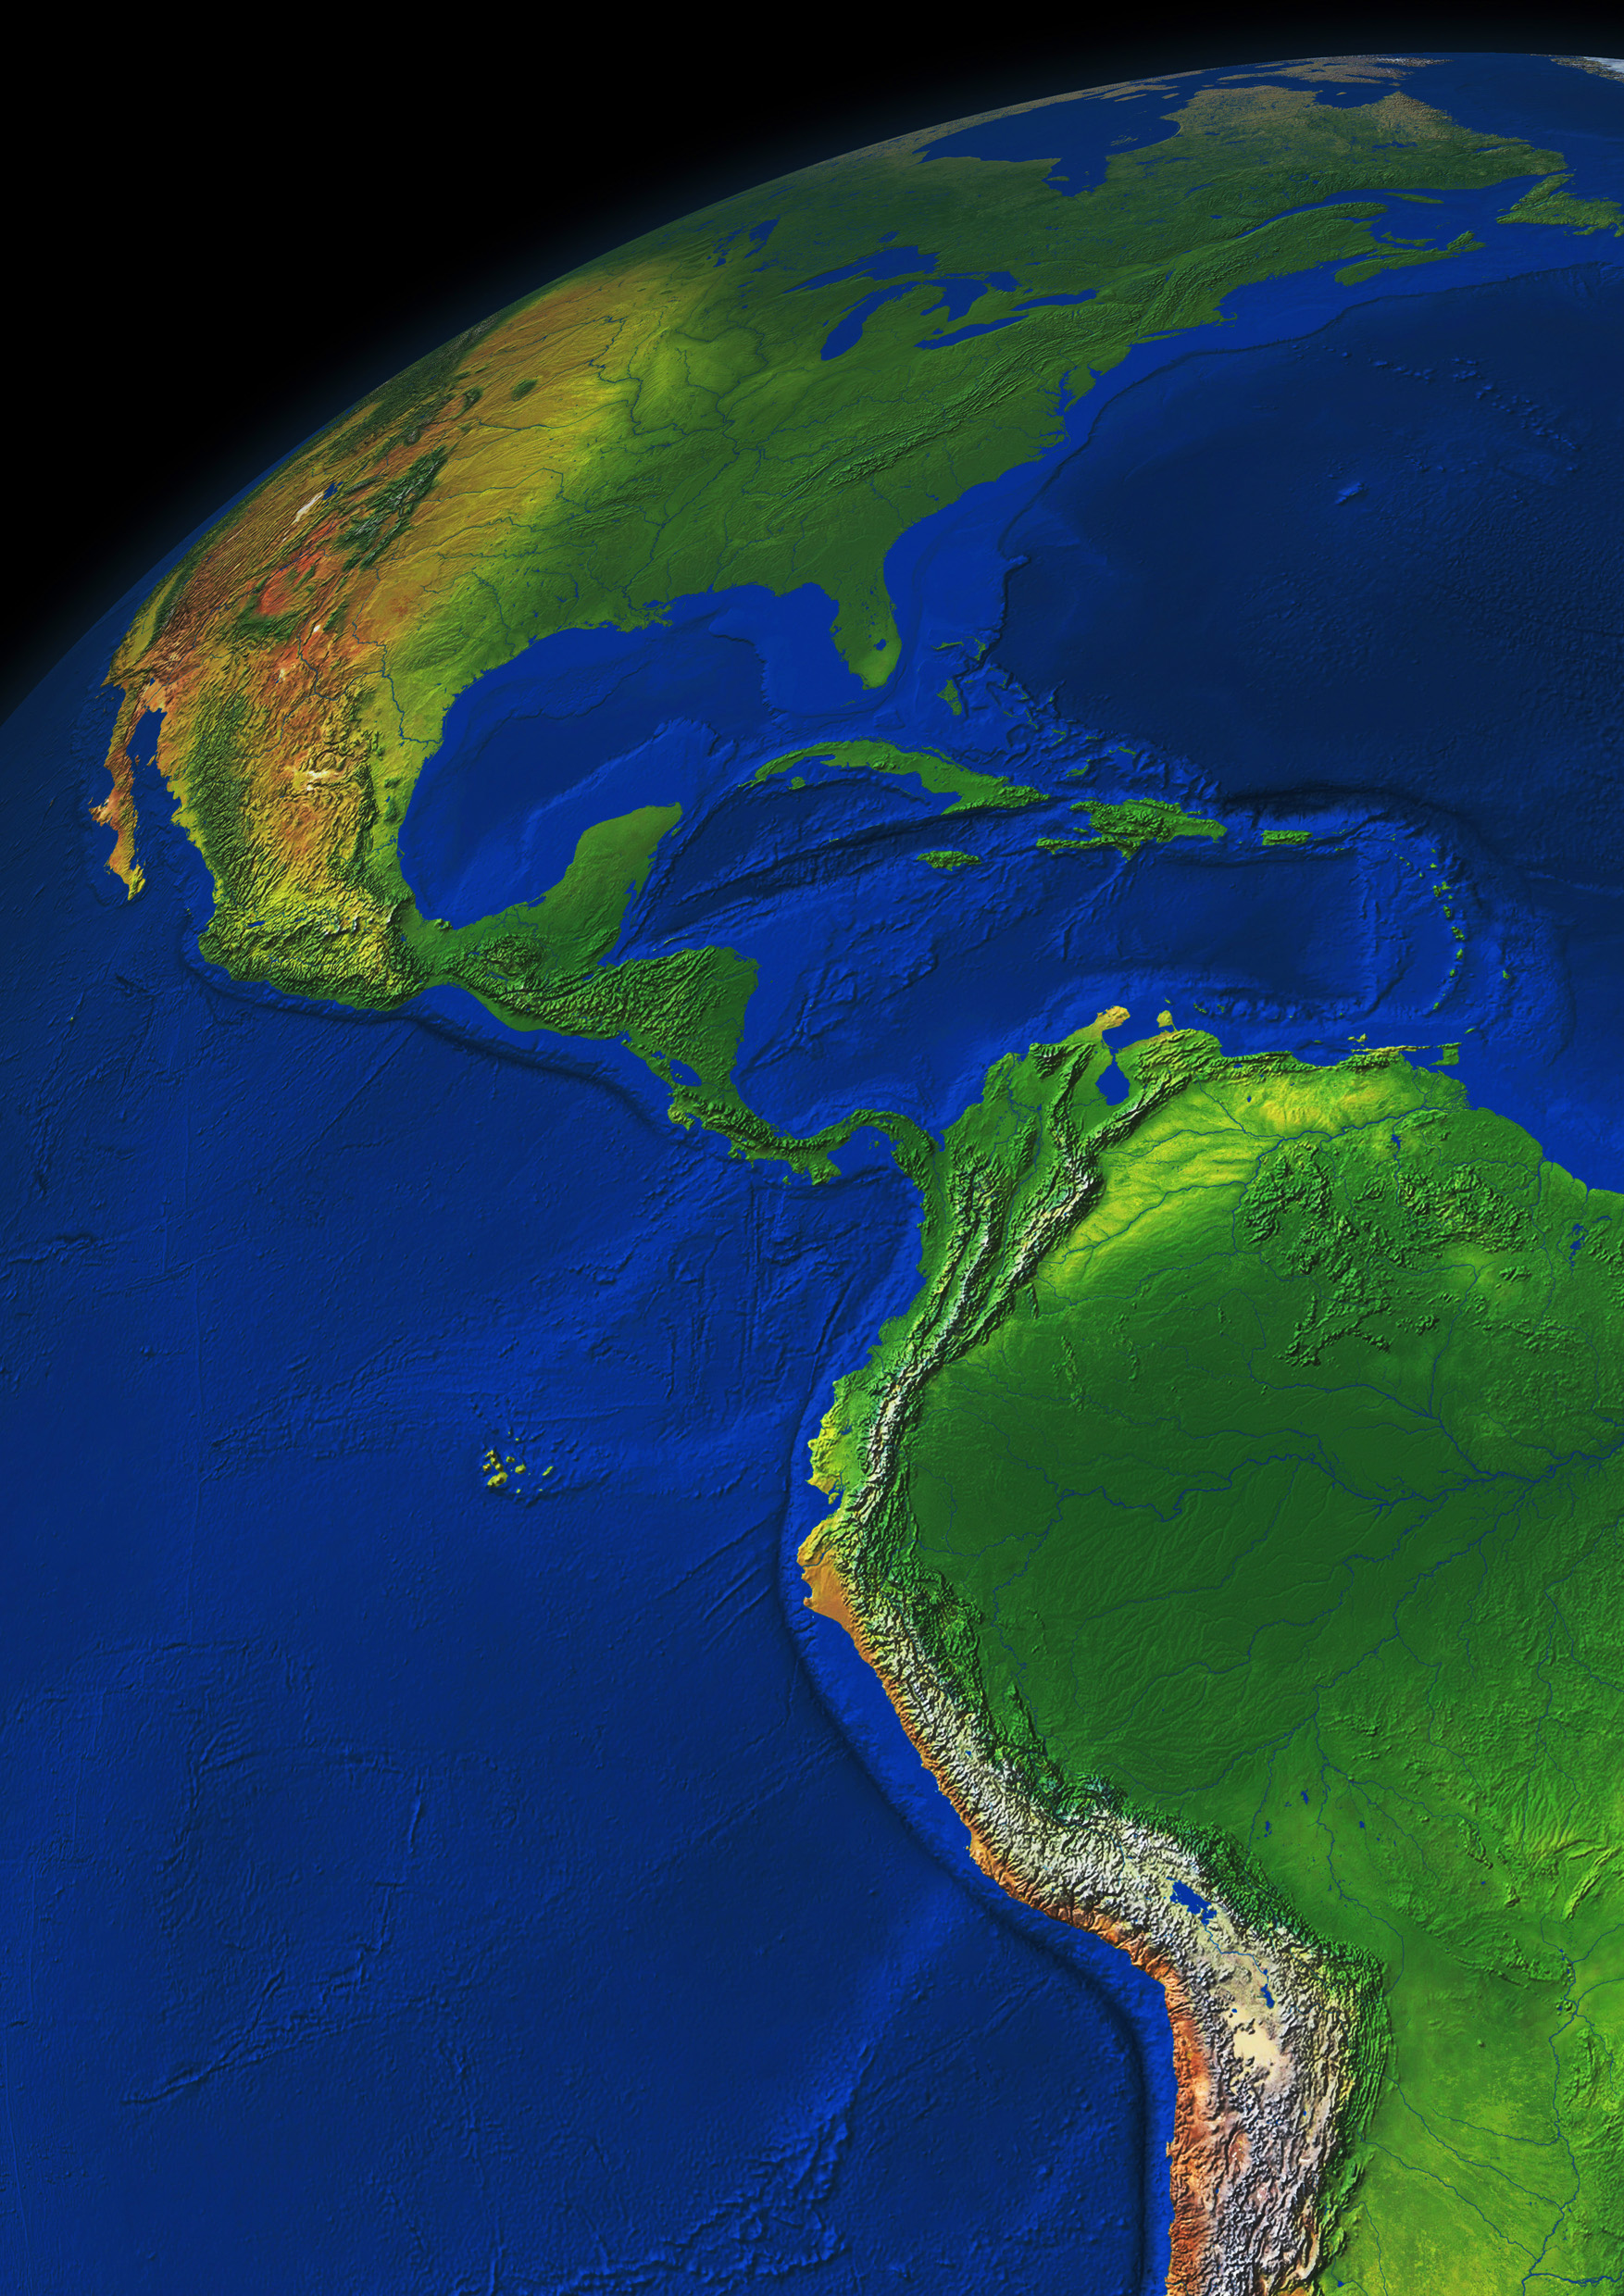 Digital image globe south america 549 the world of maps download sample gumiabroncs Gallery